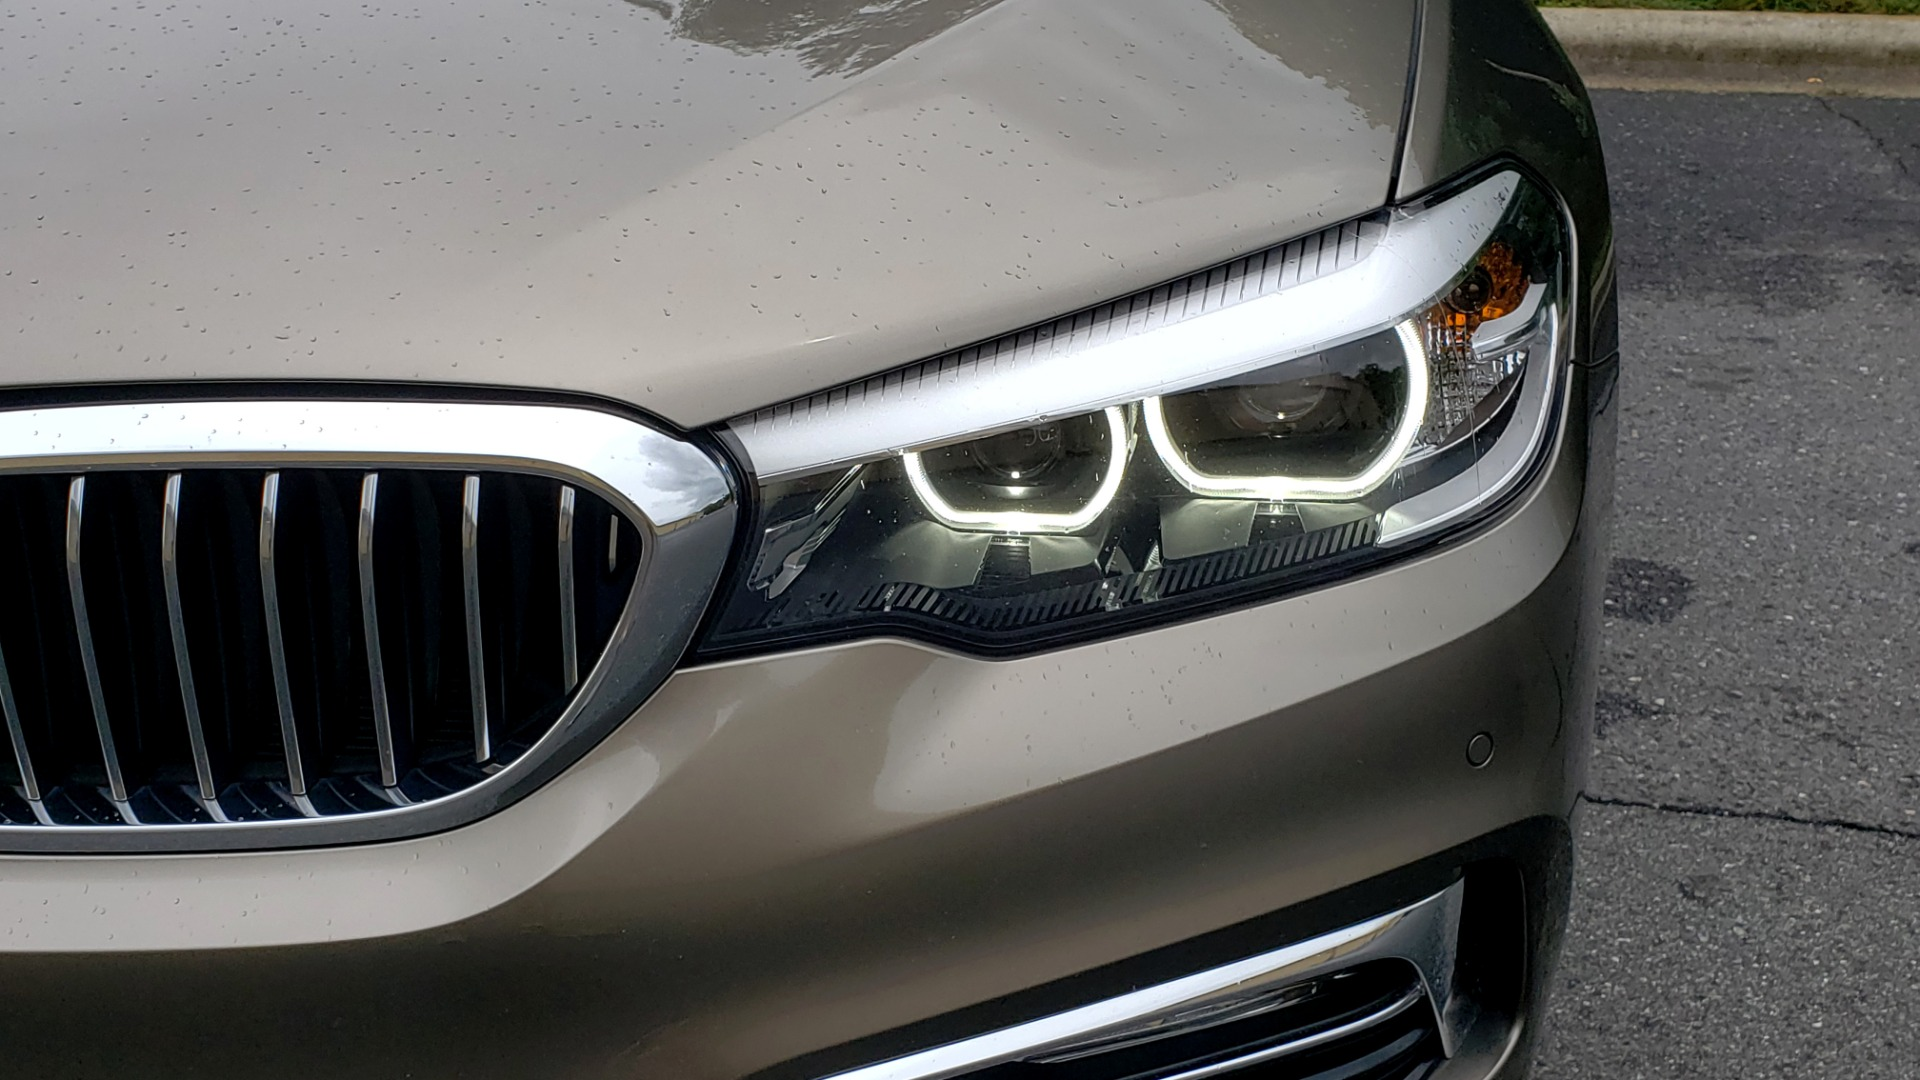 Used 2017 BMW 5 SERIES 530I PREMIUM / NAV / SUNROOF / DRVR ASST PLUS II / LUXURY for sale Sold at Formula Imports in Charlotte NC 28227 23